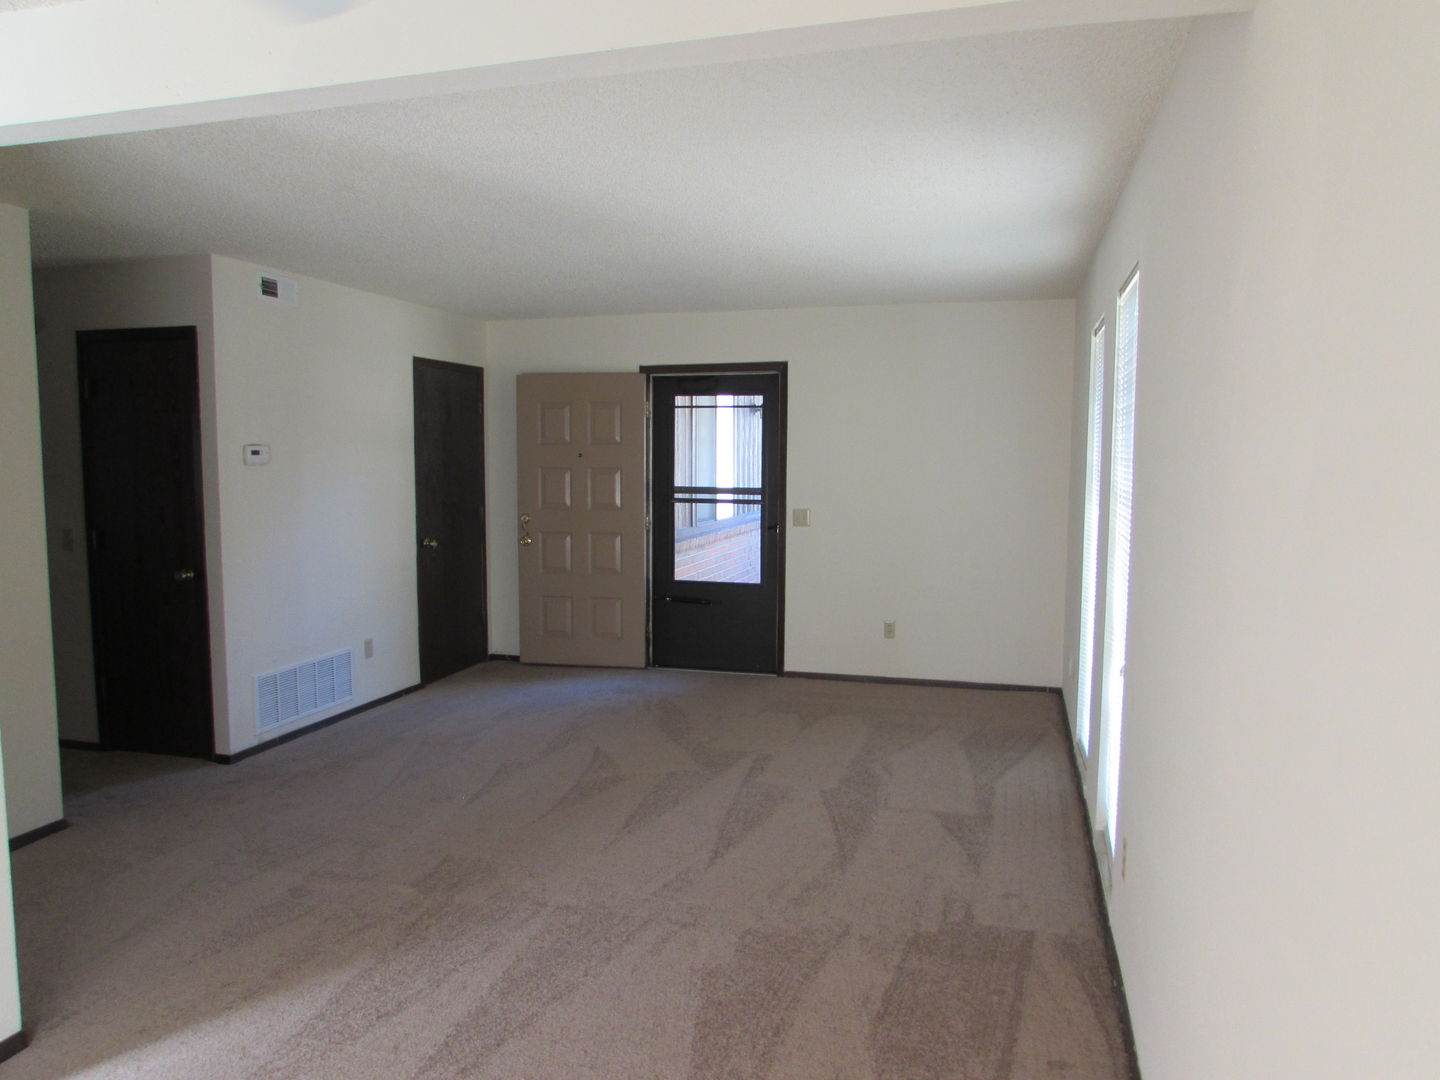 2 bedroom apartments, 2 bedroom apartments for rent - south haven